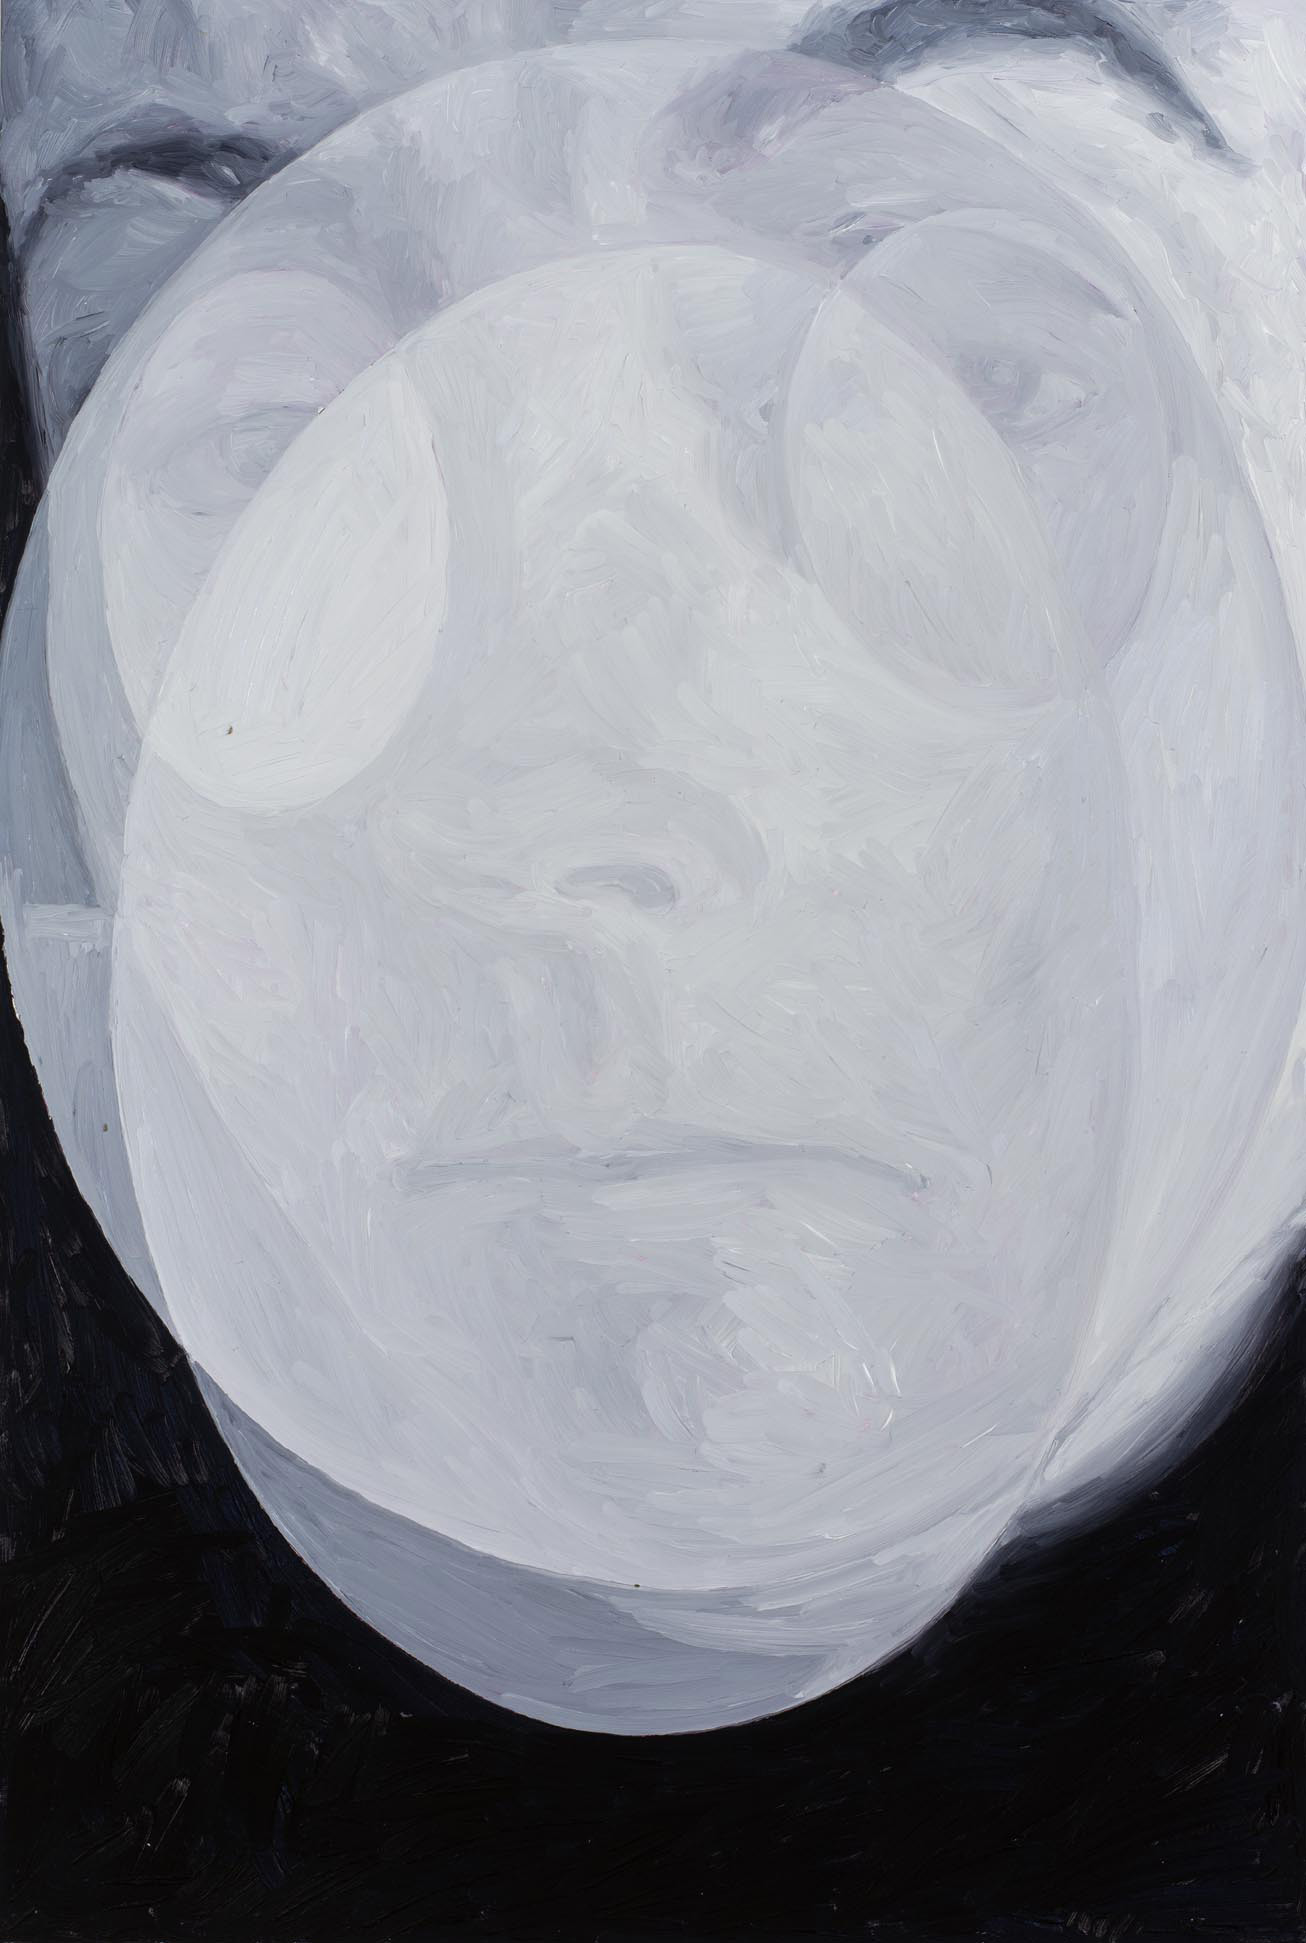 Ghost God, oil on board, 60 x 40 cm, 2012. Private collection.